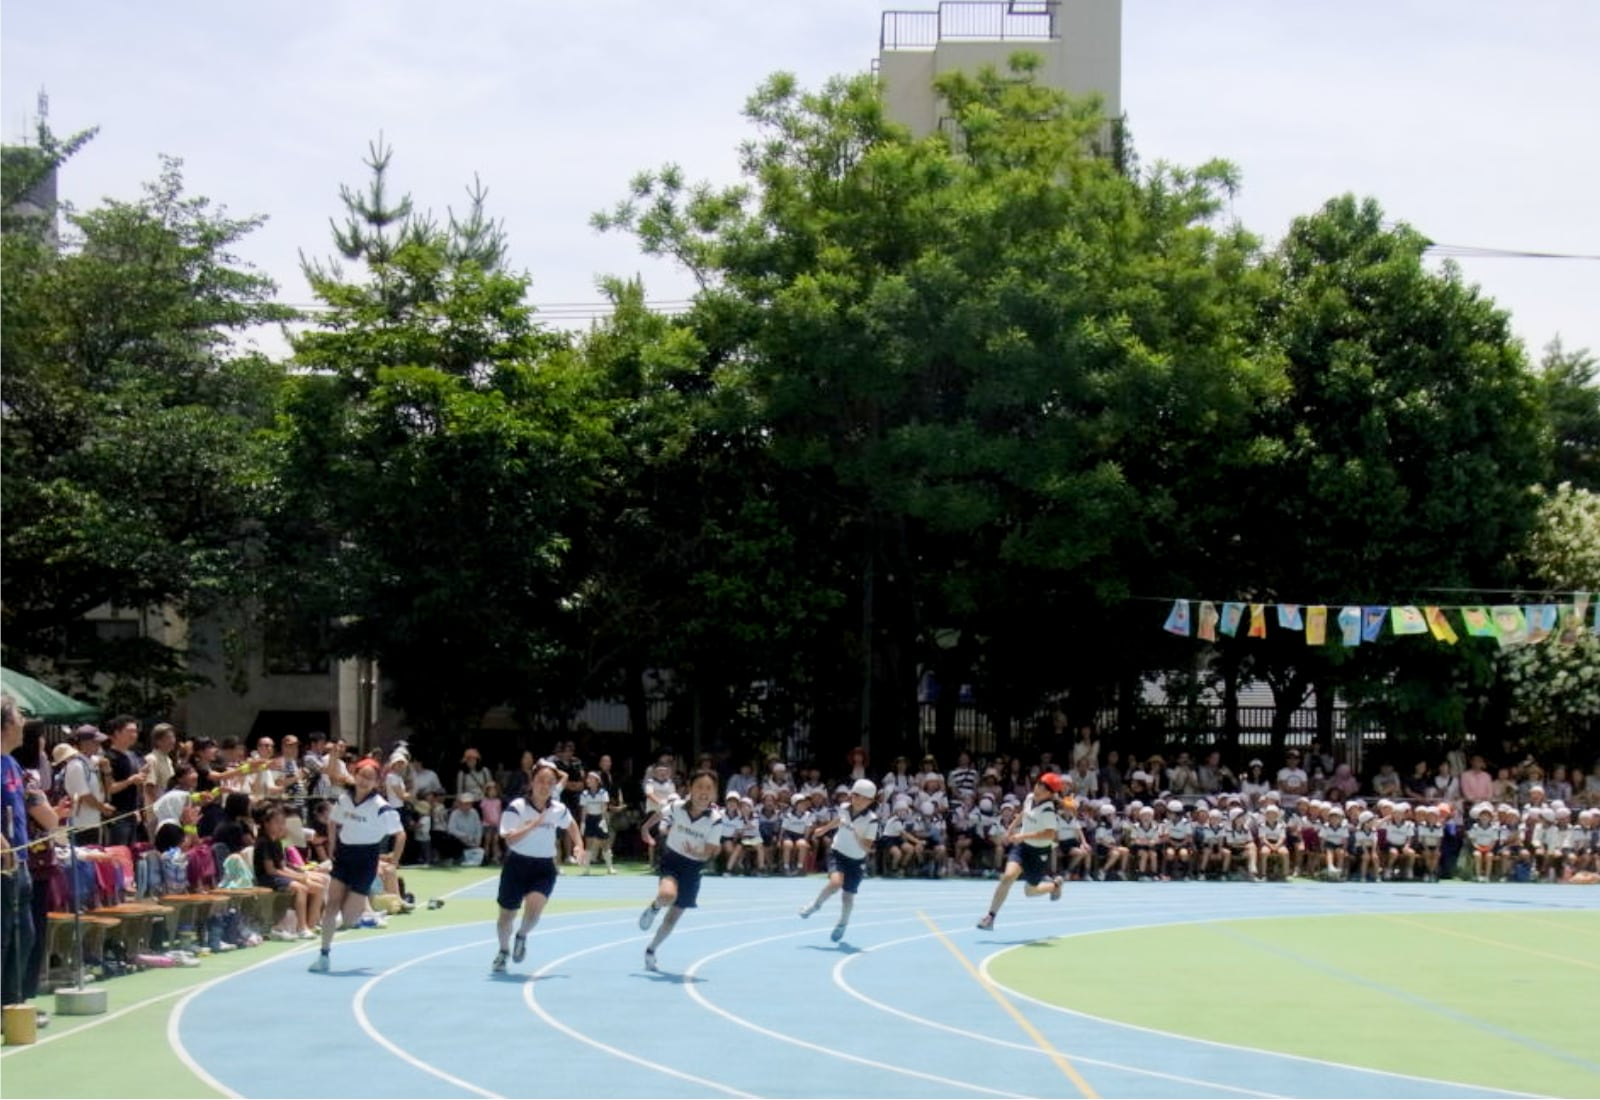 Racing - Undokai - Behind the Scenes of a Japanese Primary School Sports Day